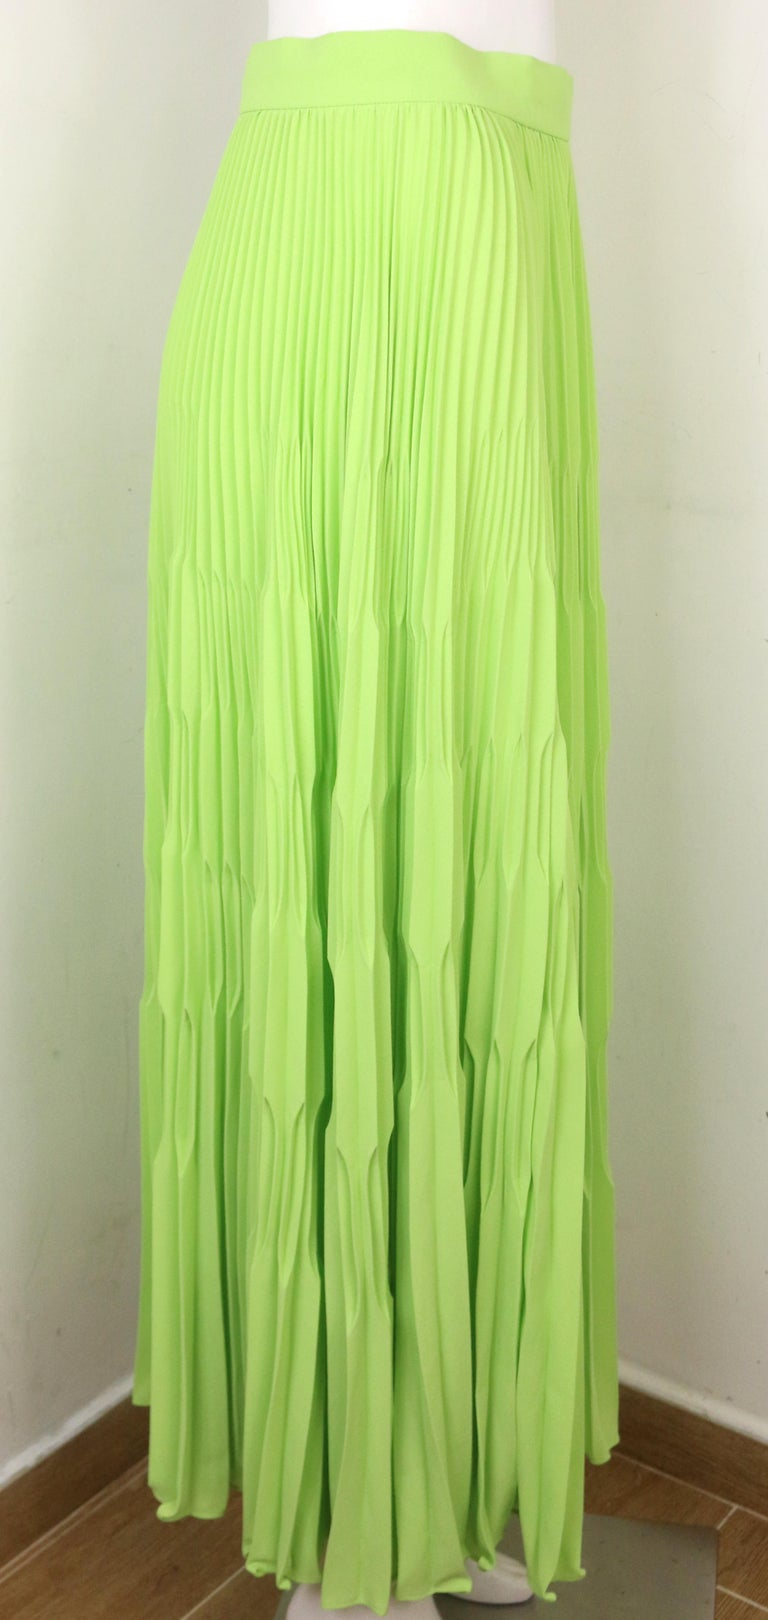 - Vintage 80s Escada green polyester pleated long skirt. Its a really bright and nice color. Pair it with a white t-shirt or top for a hot summer vacation.   - Featuring side zip and button closure.   - Size 36.   - 100% Polyester.   - Unworn with